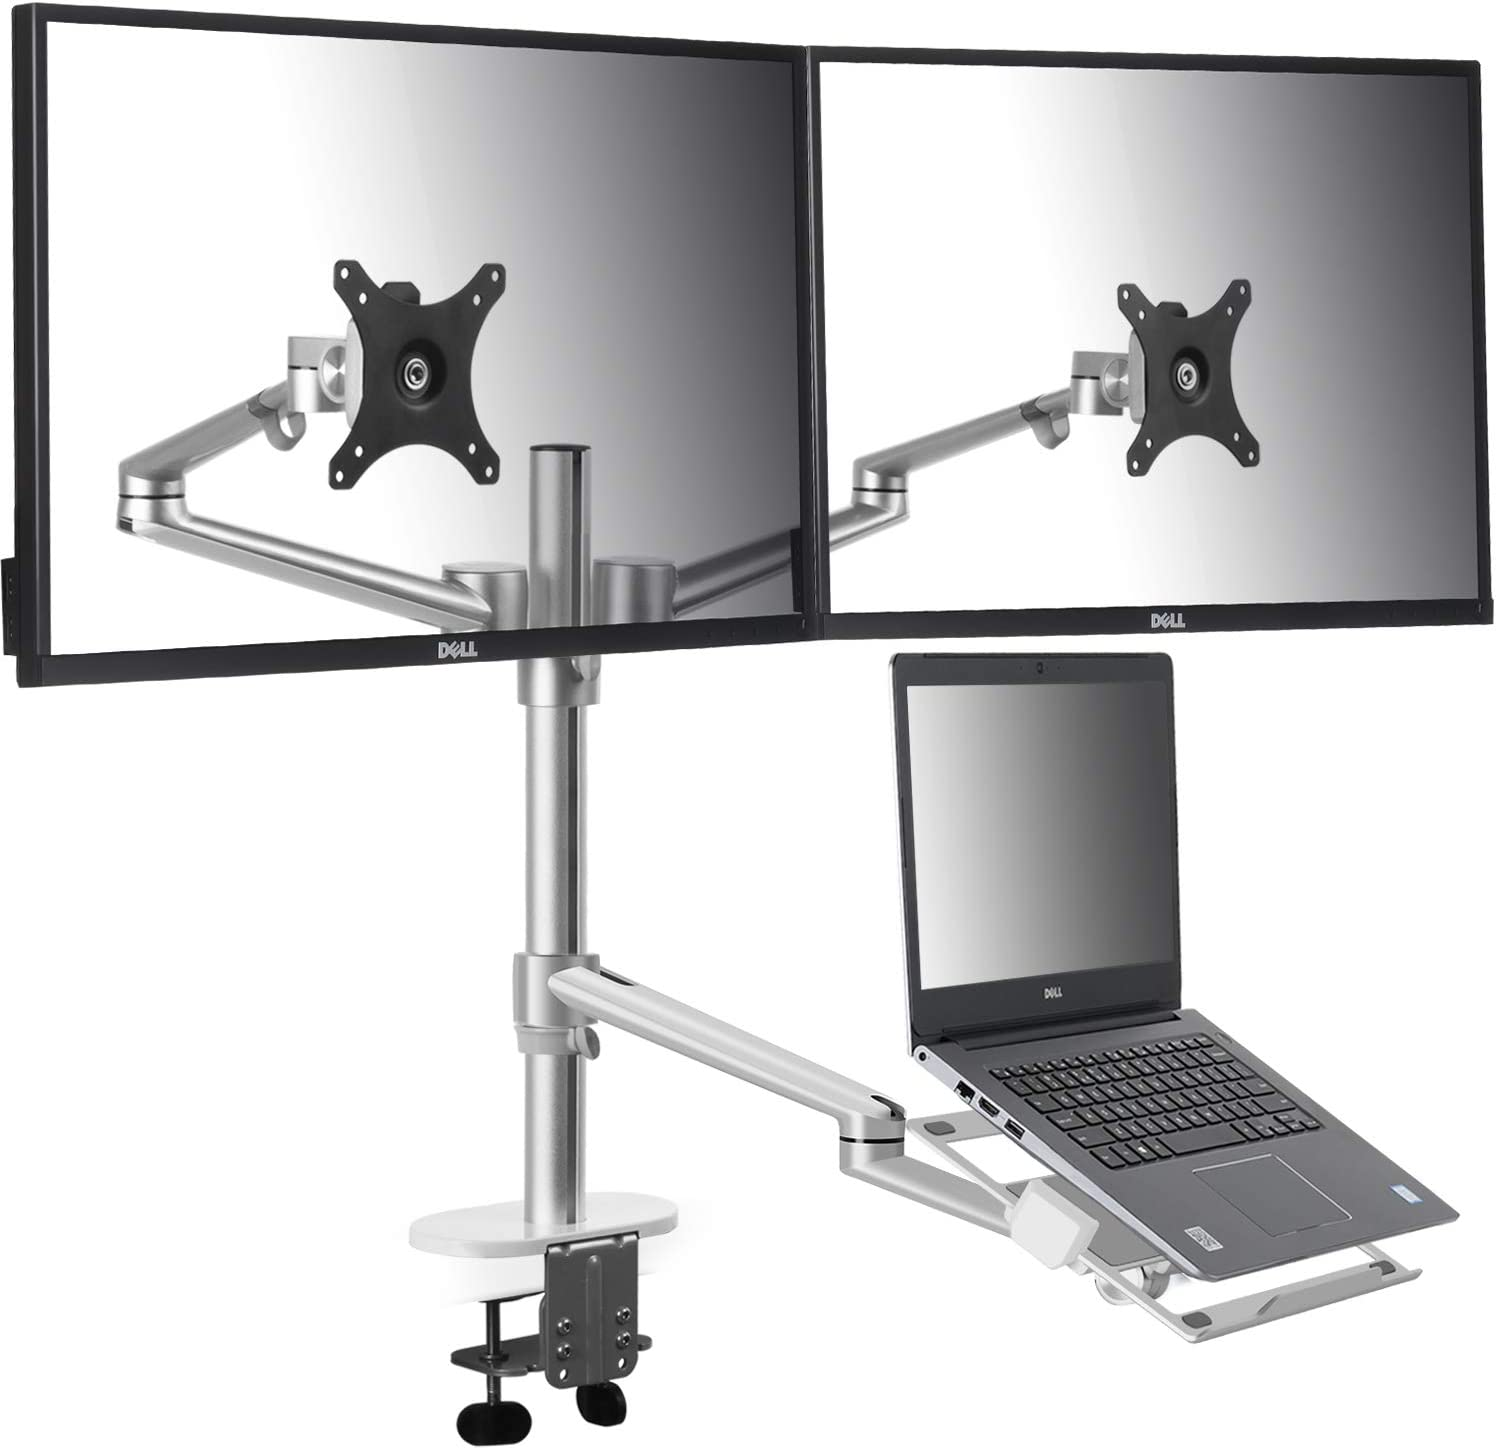 viozon Monitor and Laptop Mount, 3-in-1 Adjustable Triple Monitor Arm Desk Mounts, Dual Desk Arm Stand/Holder for 17 to 27 Inch LCD Computer Screens, Extra Tray Fits 12 to 17 inch Laptops (OL-10T-S)